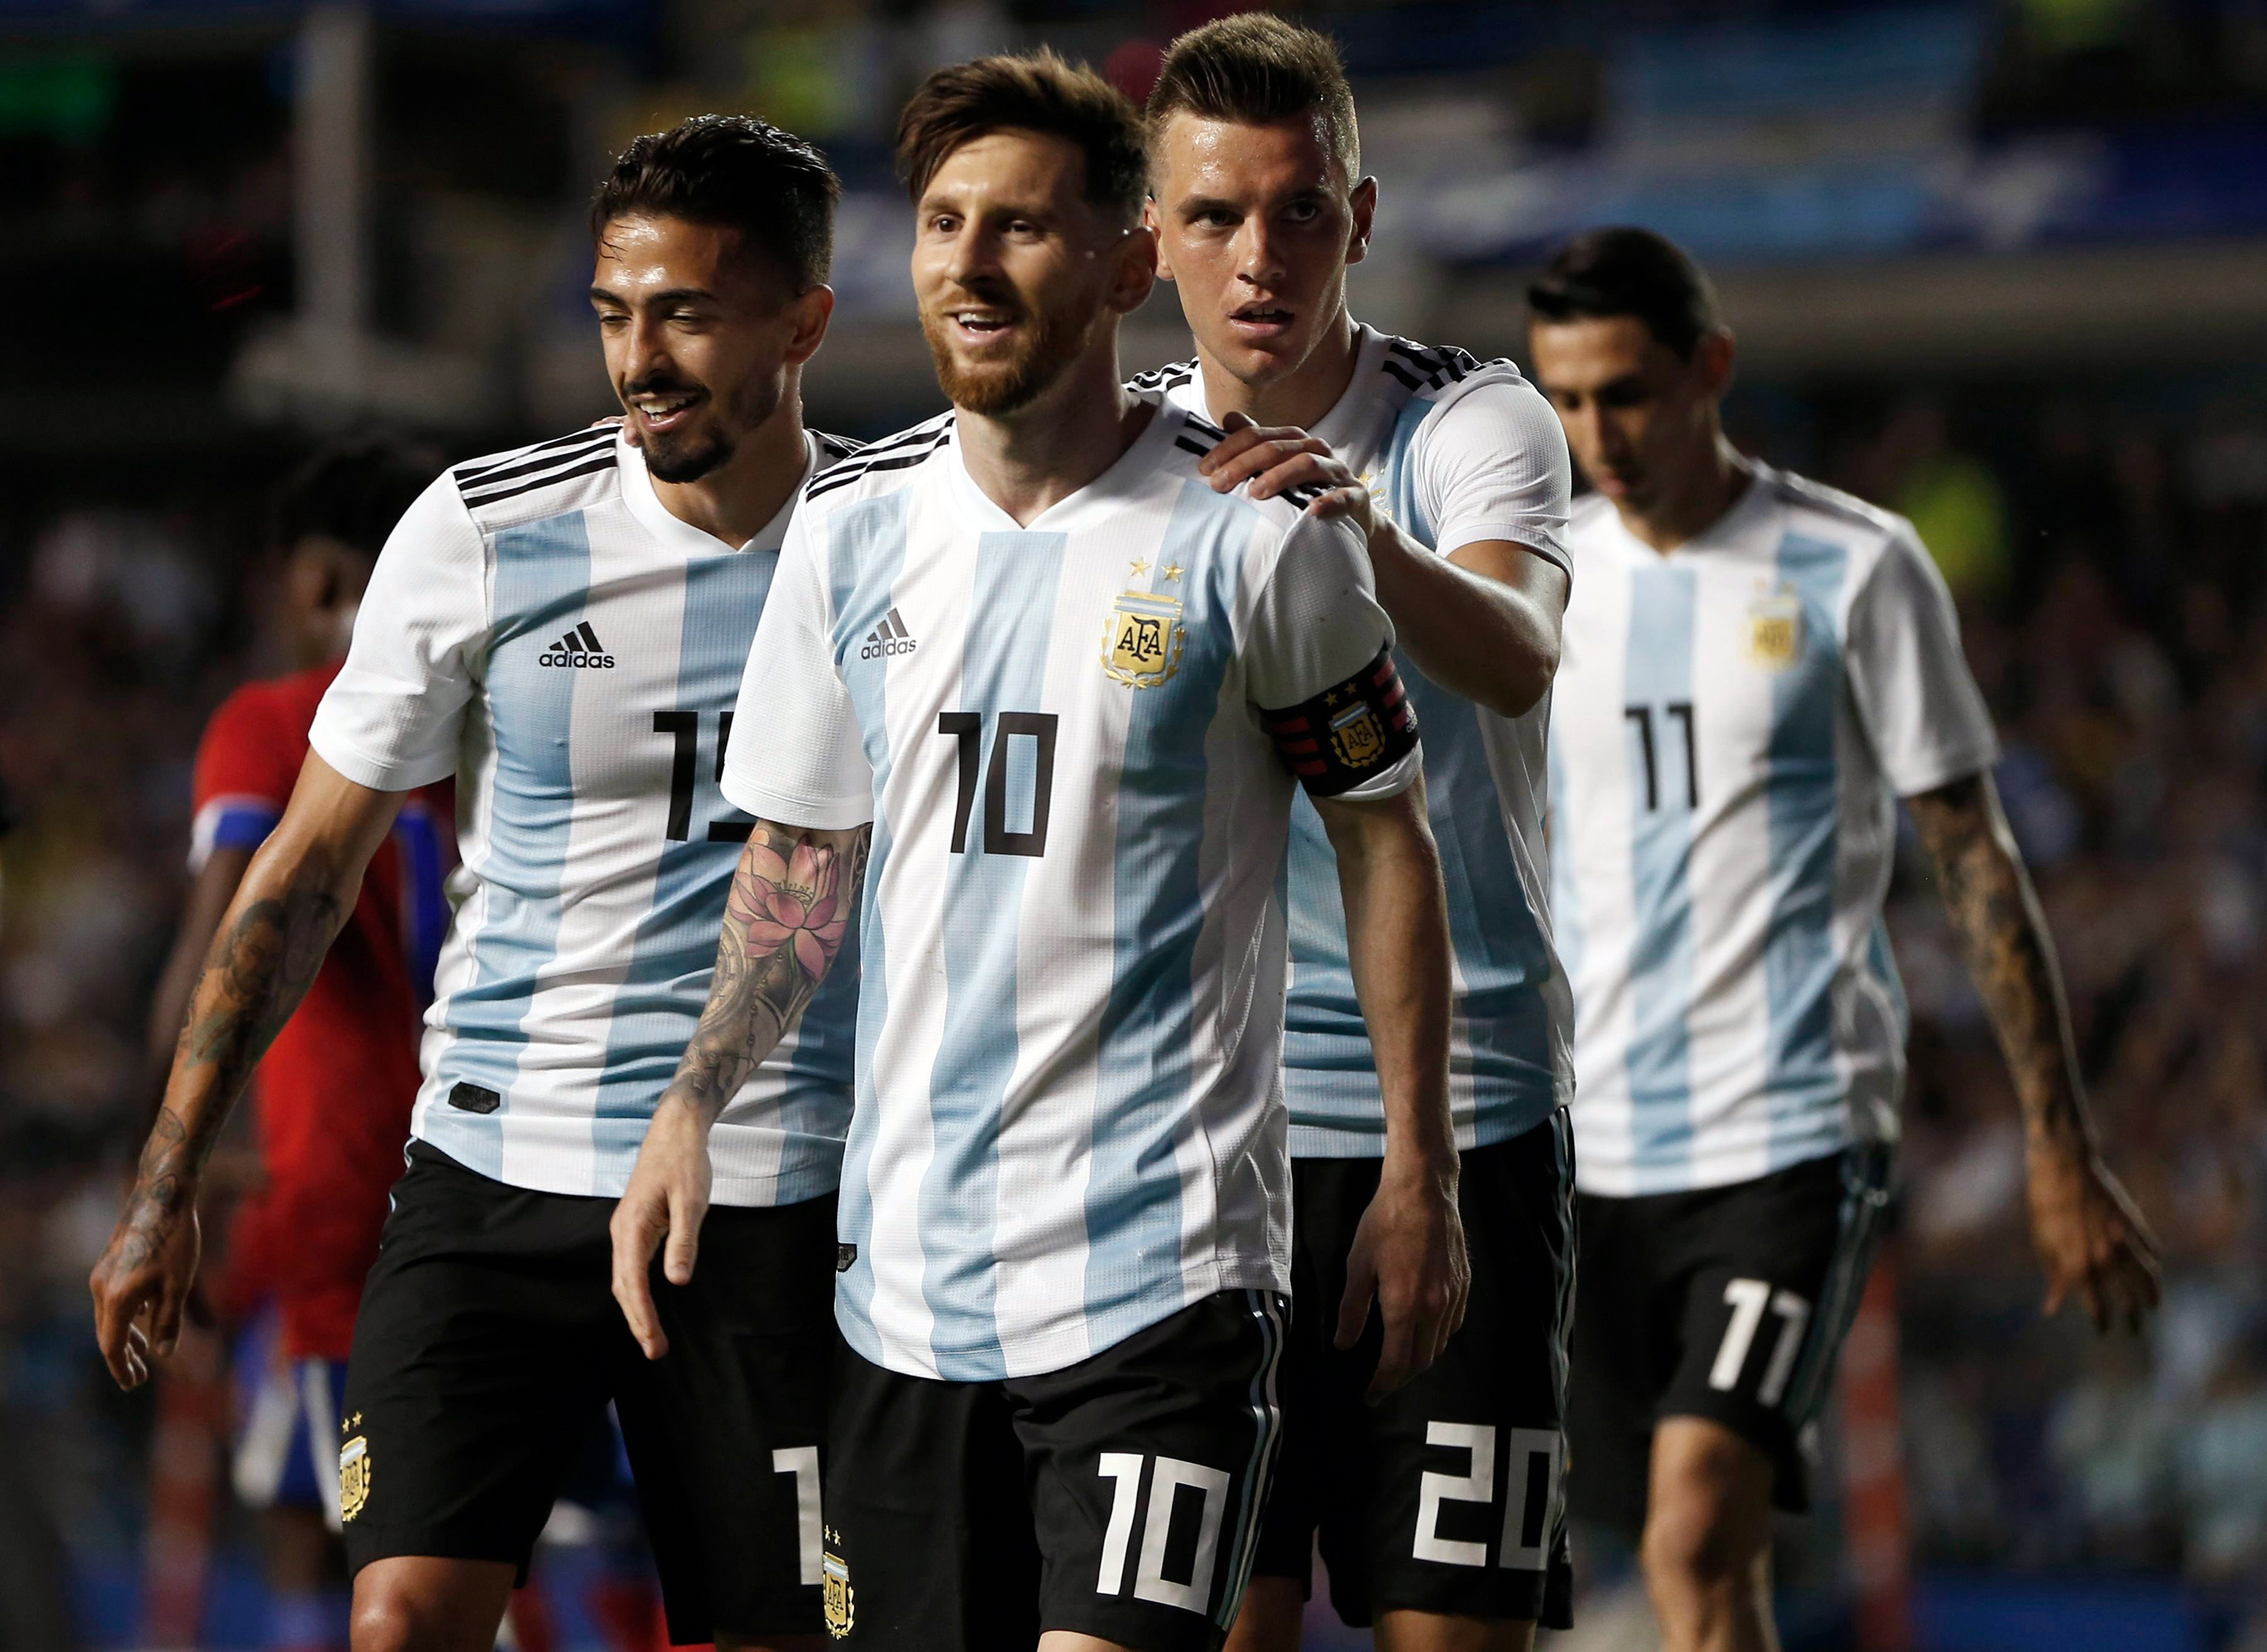 Argentina's Manuel Lanzini, left, Giovanni Lo Celso, second right, and Angel Di Maria, right, congratulate teammate Lionel Messi, second left, after his hat trick during a friendly soccer match between Argentina and Haiti at the Bombonera stadium in Buenos Aires, Argentina, May 29, 2018.